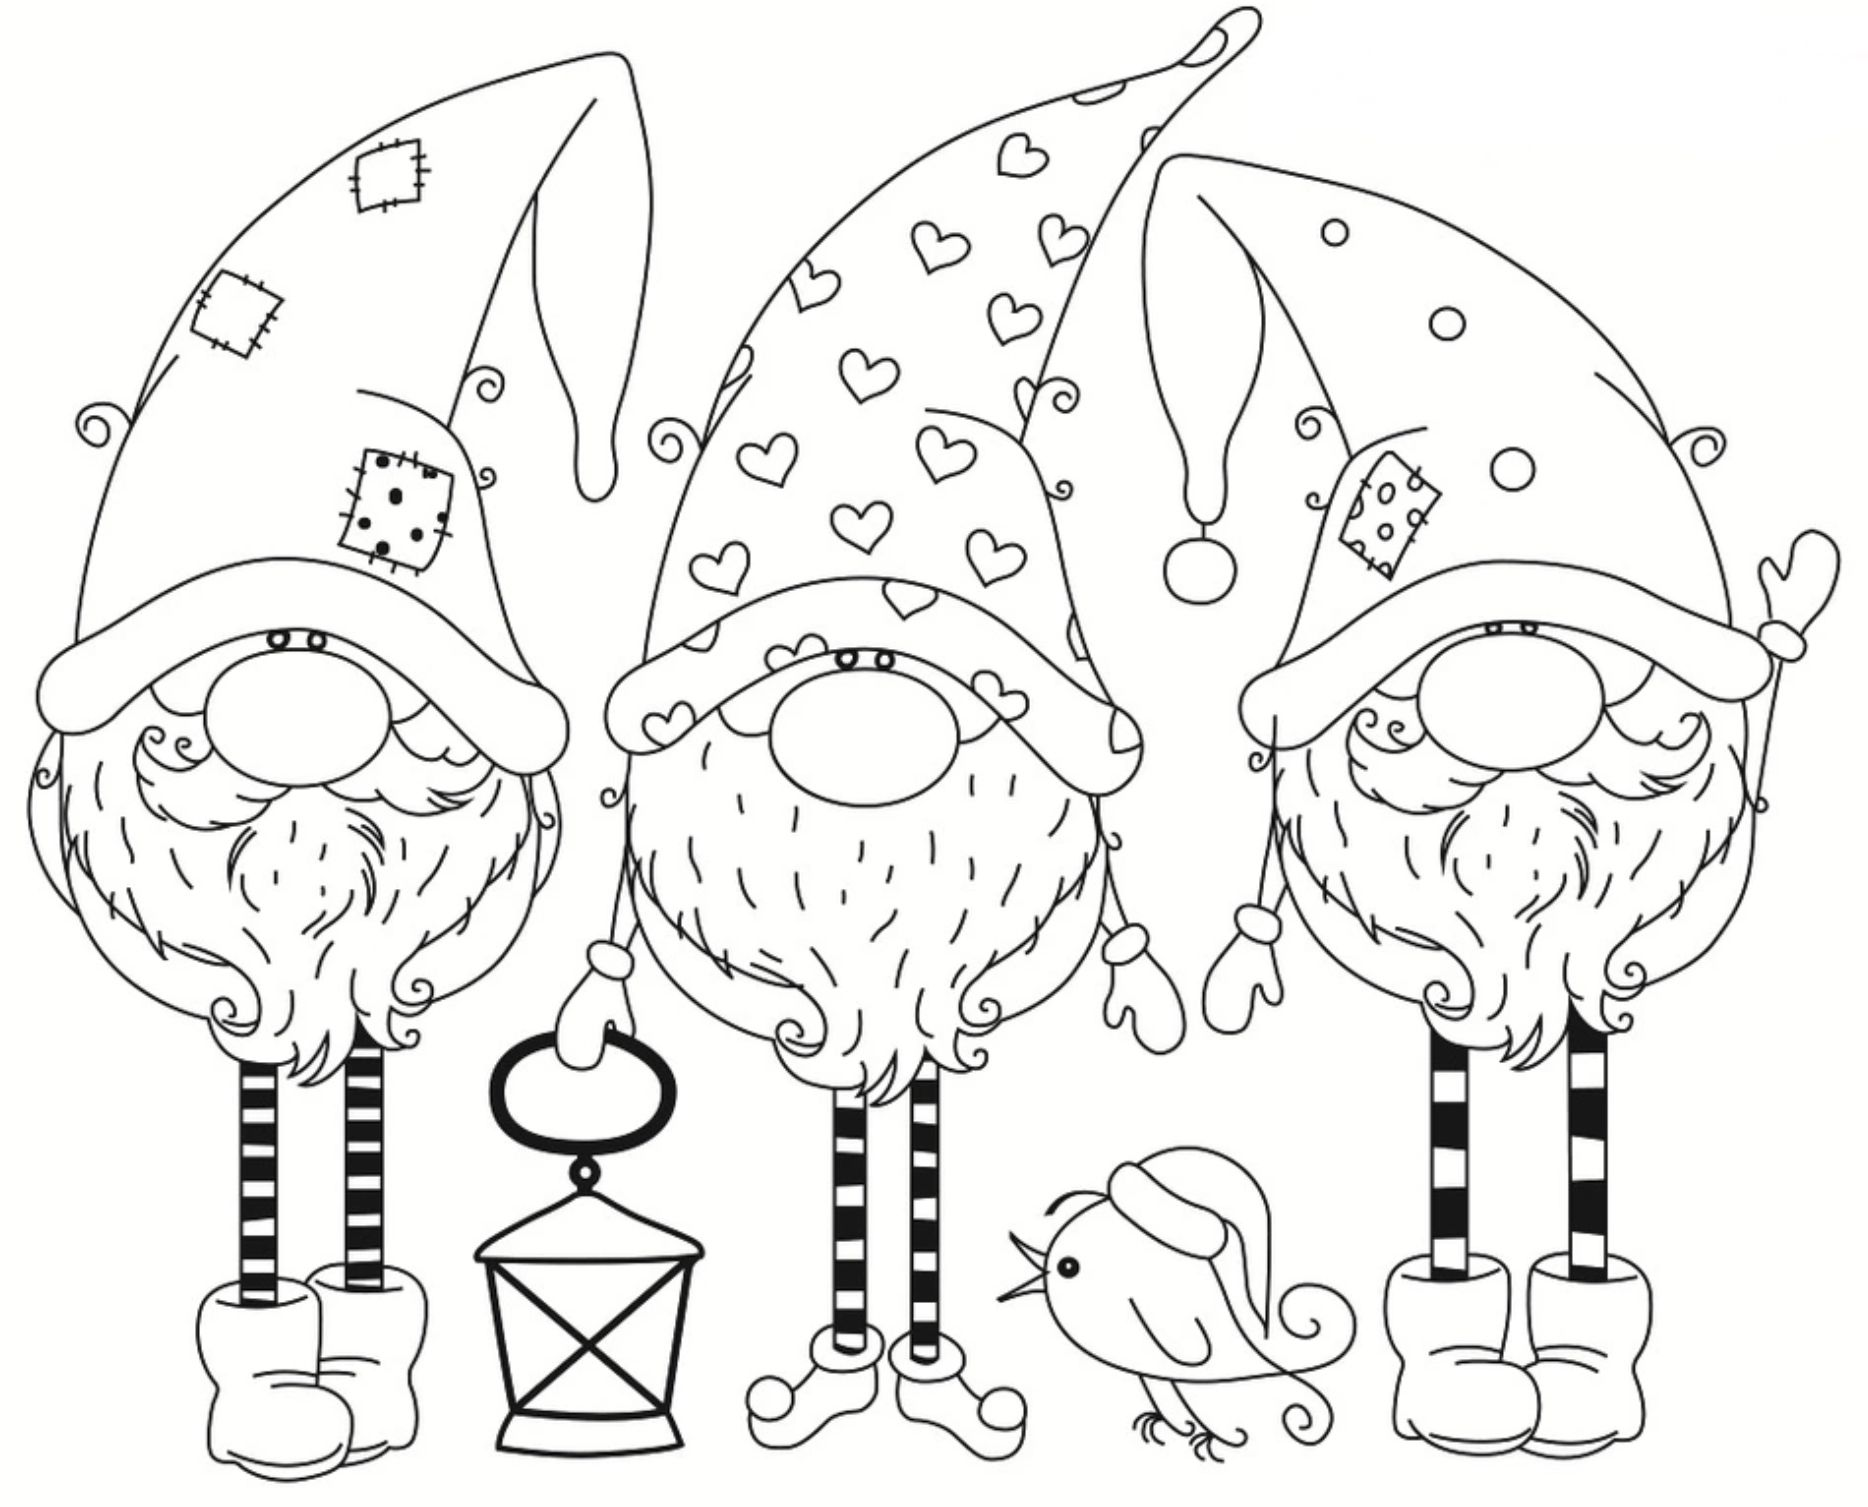 Pin By Judy Brabham On Omalovanky Christmas Coloring Pages Christmas Drawing Gnomes Crafts